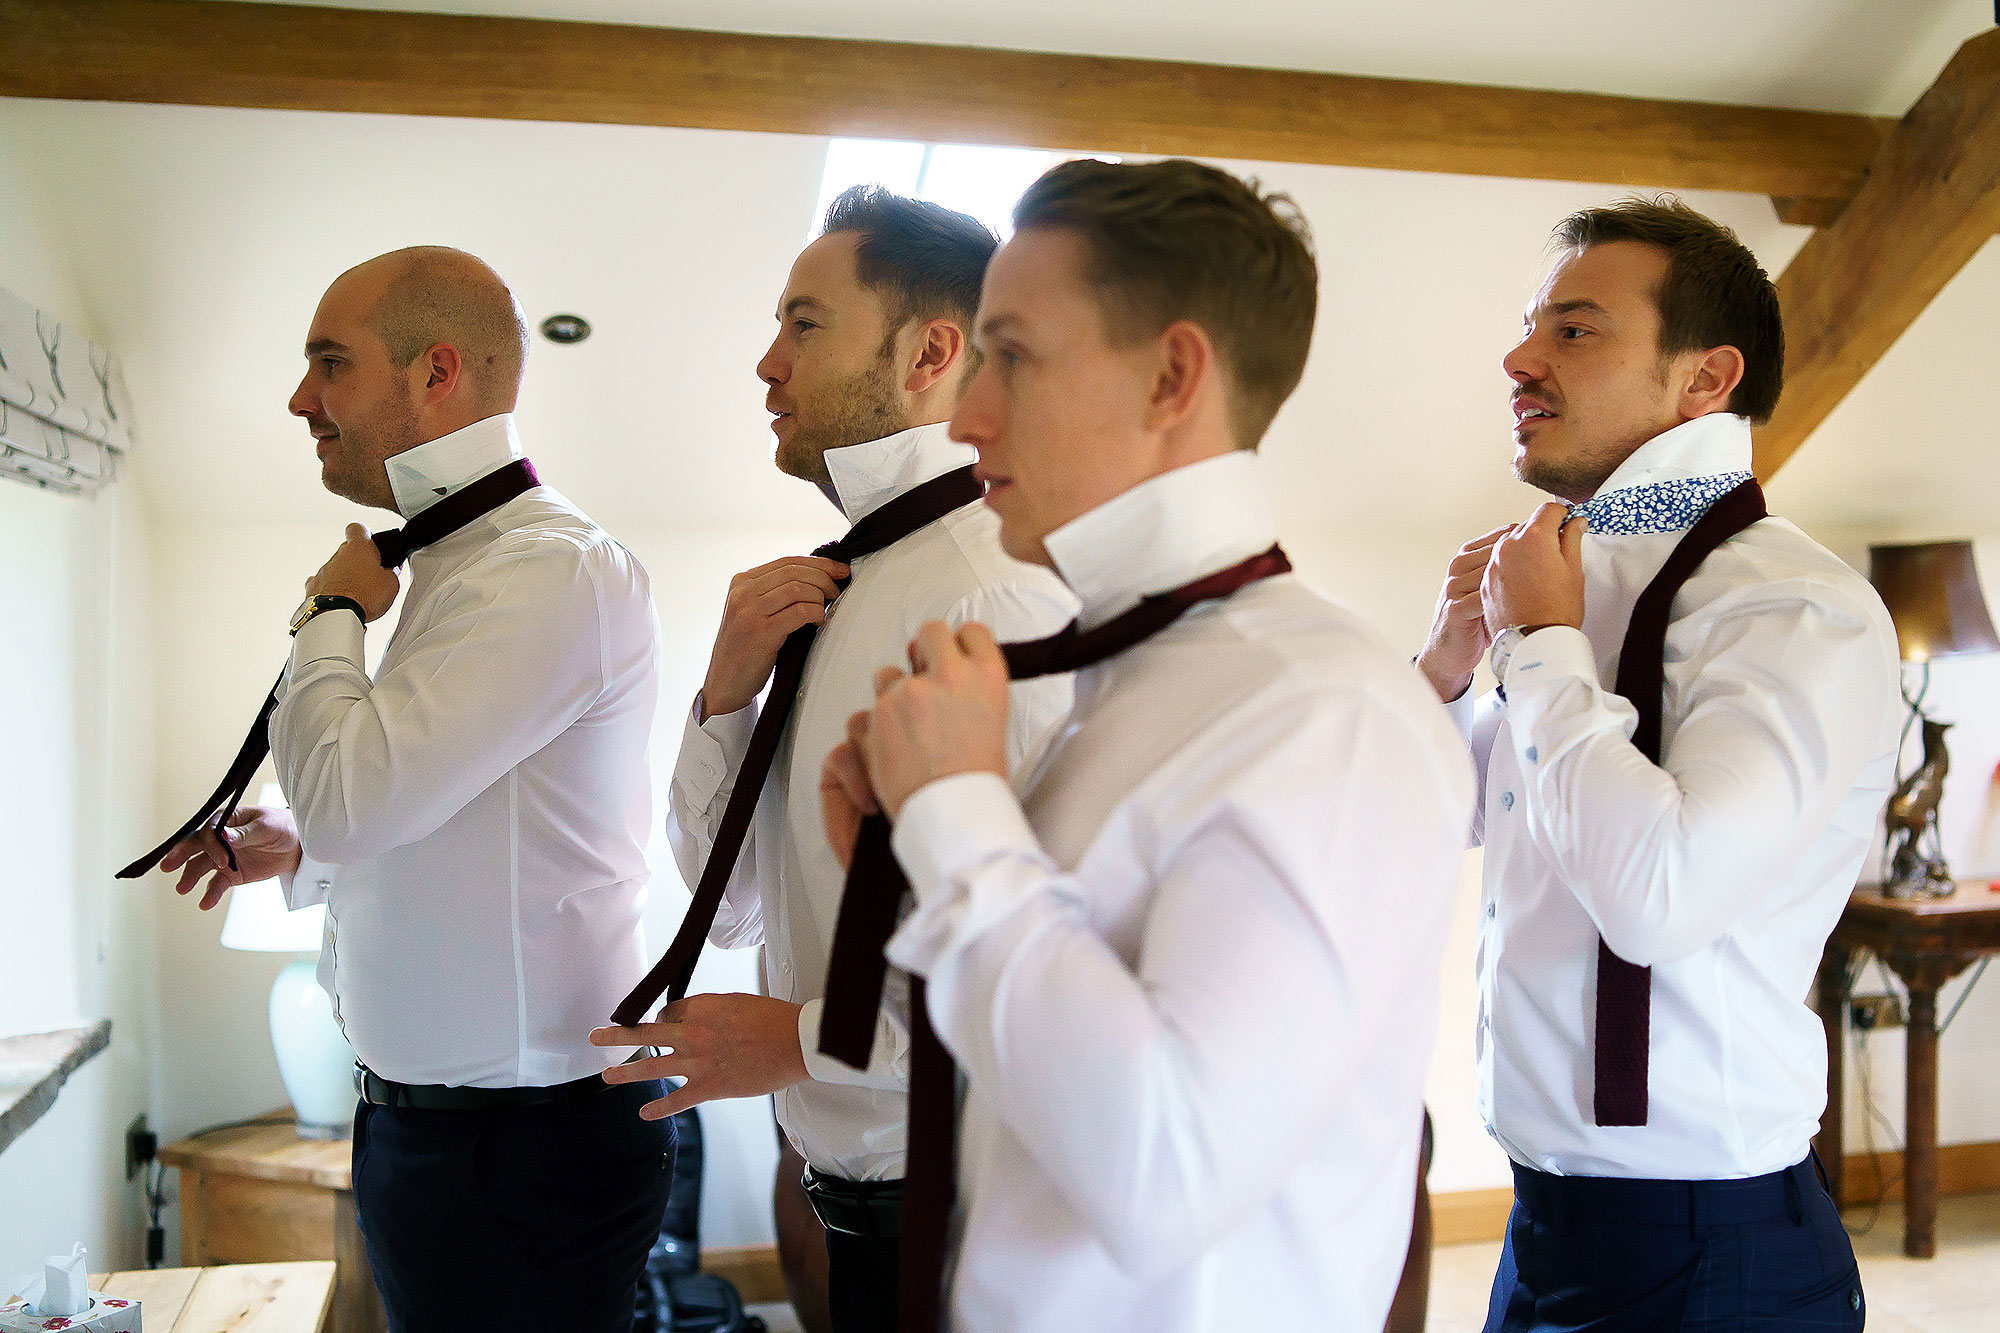 Groom and groomsmen lined up wearing white shirts fastening ties - The Out Barn at Clough Bottom Wedding Photography